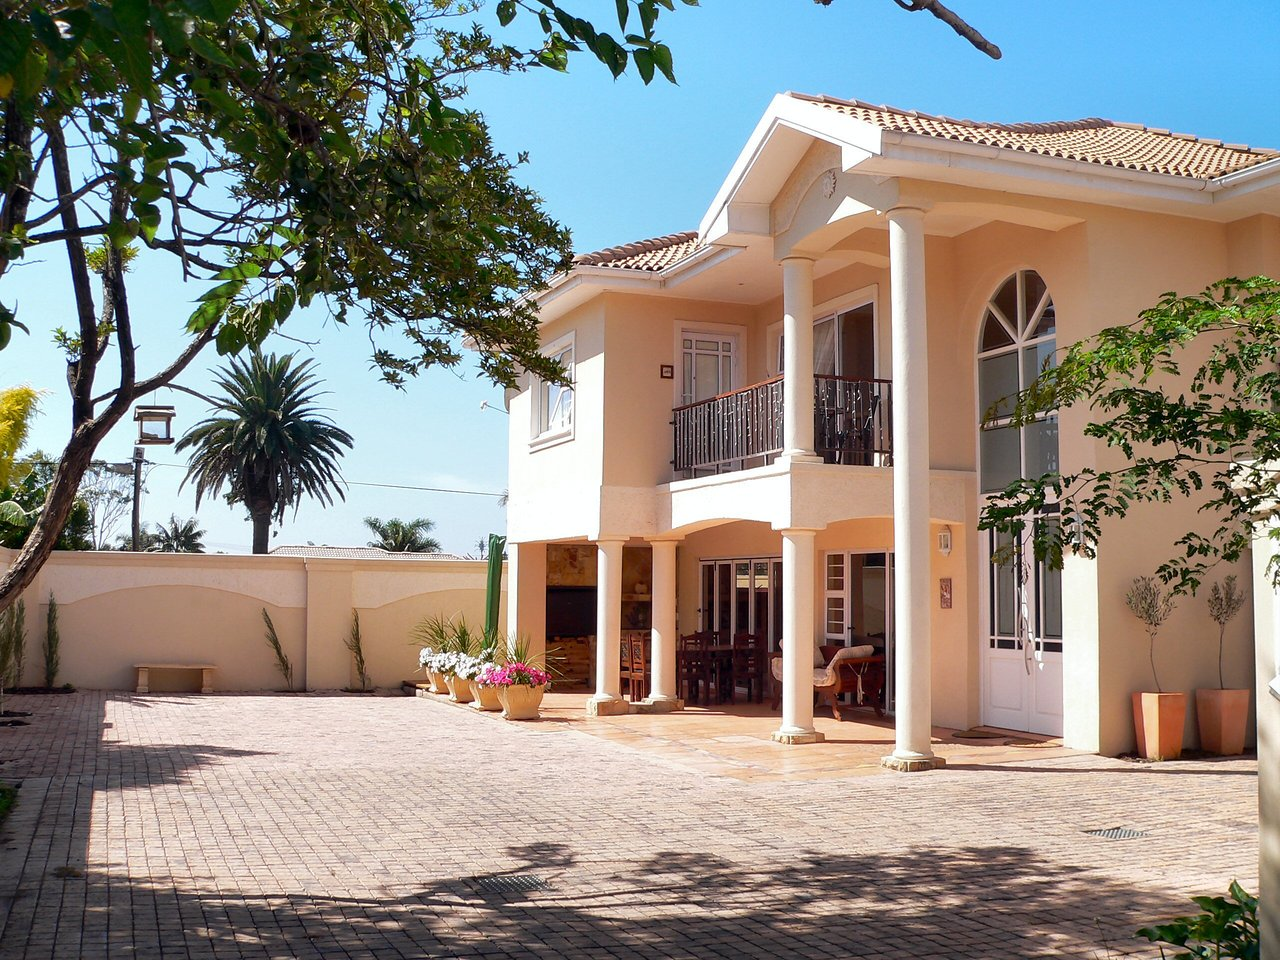 arum guest house now r 889 was r 1 0 0 8 updated 2019 rh tripadvisor co za